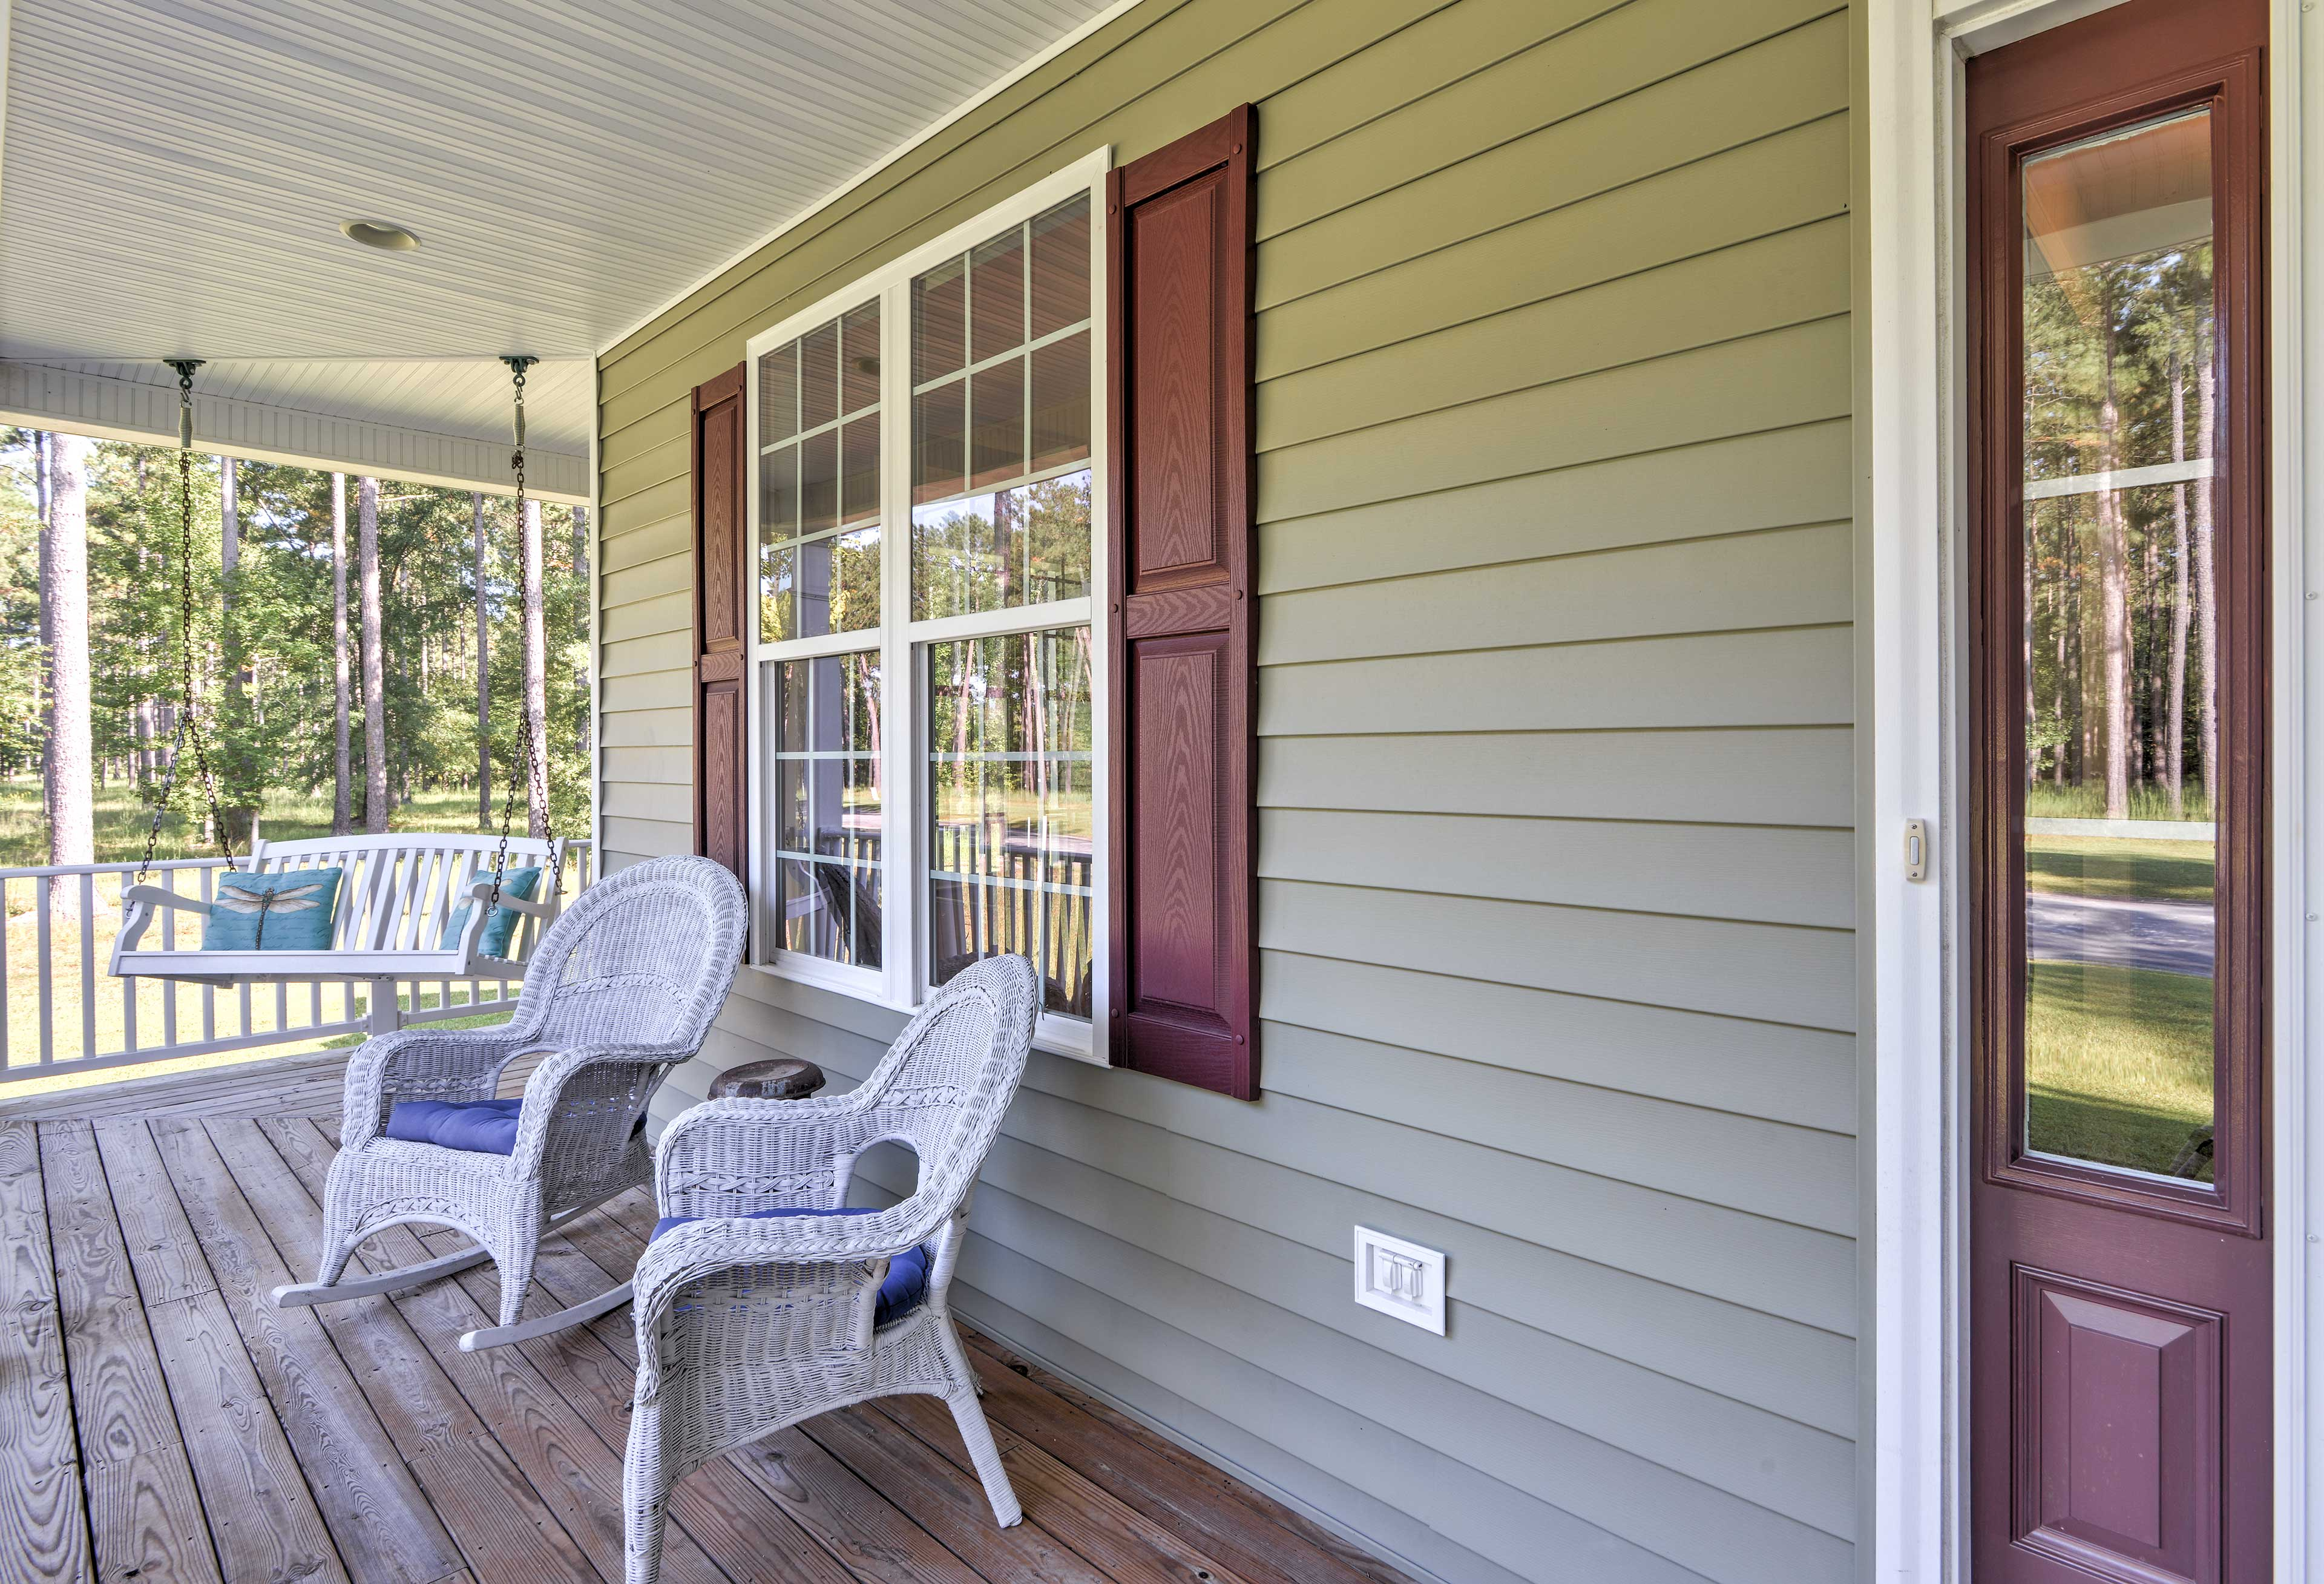 Walk outside in the morning to sip a warm cup of coffee on the porch swing.